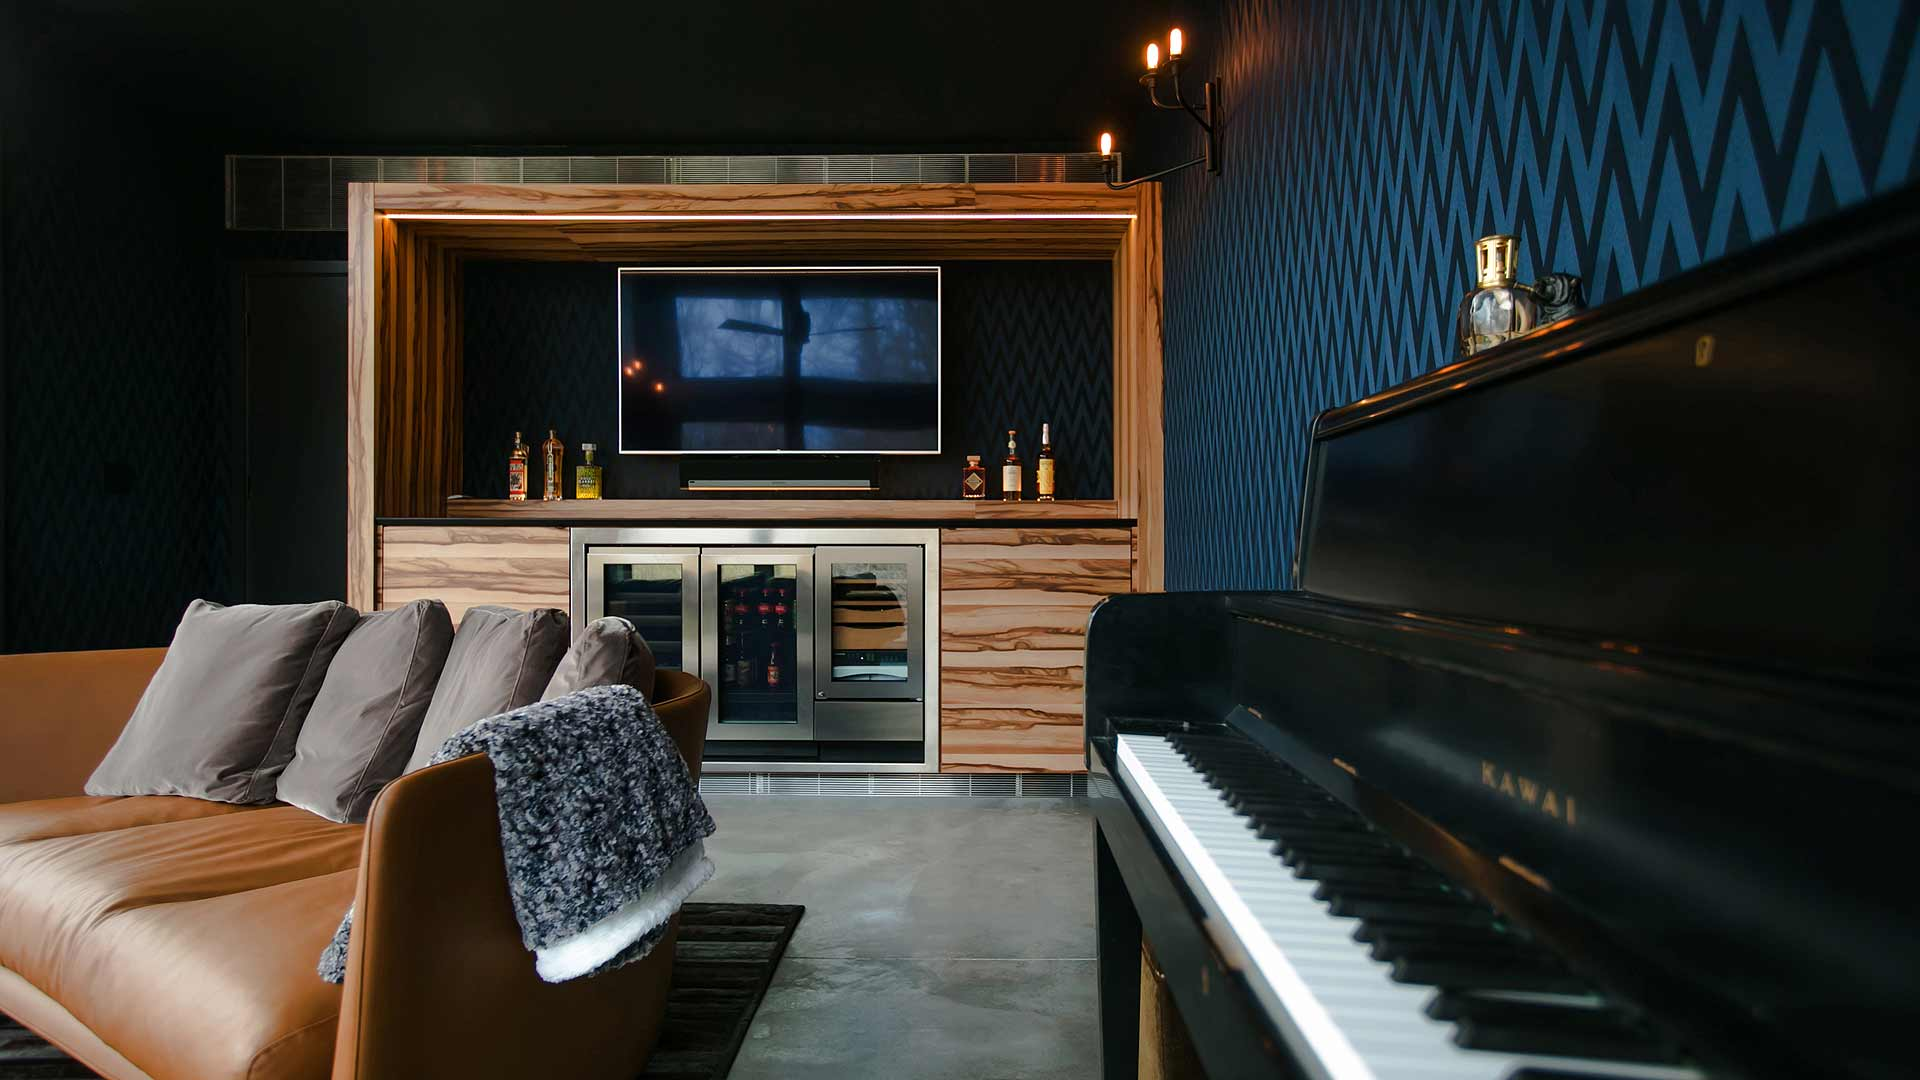 Cigar Room Interior - Piano - Humidor - Midcentury Modern Addition - Brendonwood, Indianapolis - Christopher Short, Paul Reynolds, Architects, HAUS | Architecture For Modern Lifestyles - WERK | Building Modern - Paul Reynolds, Project Manager